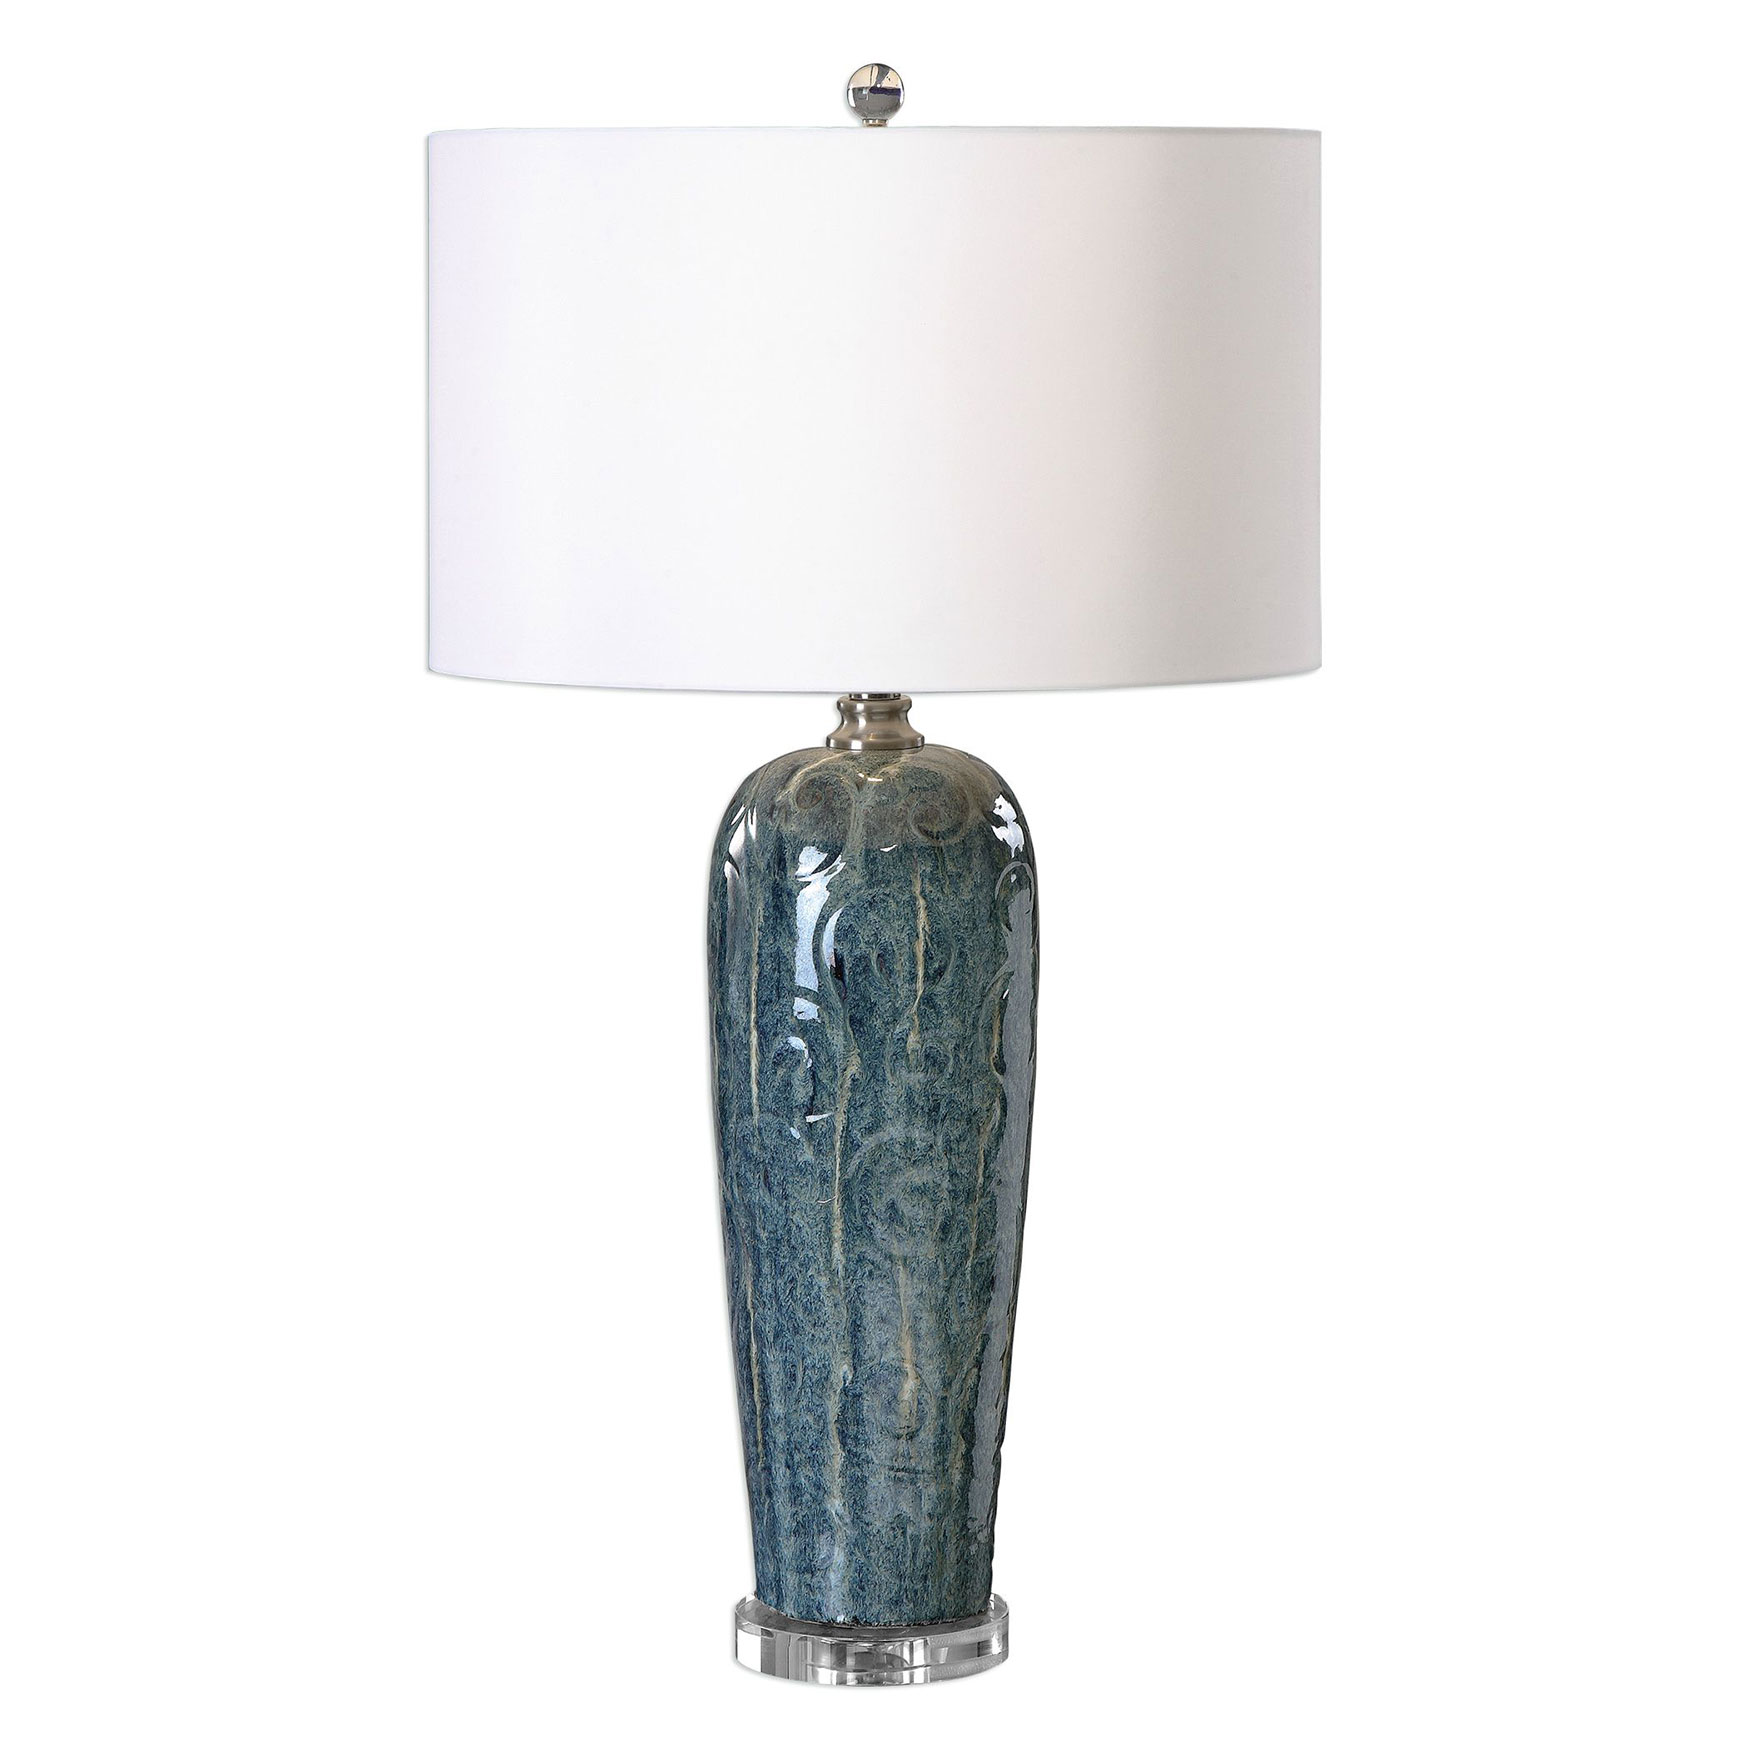 Maira Blue Ceramic Table Lamp, BLUE